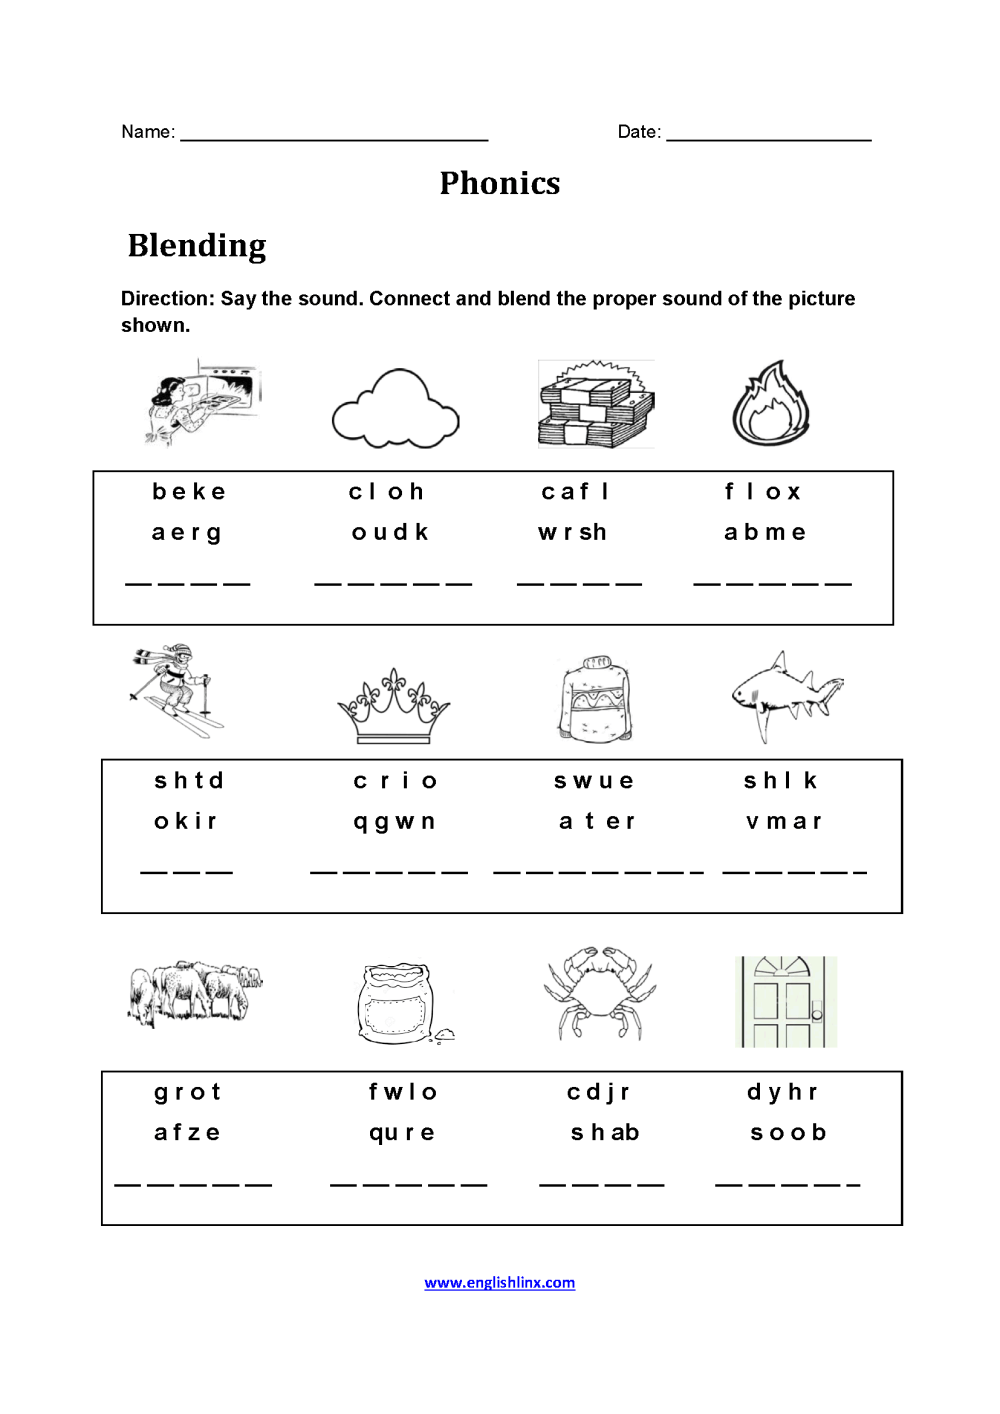 medium resolution of 20 Best Phonics Worksheets For 5th Graders images on Worksheets Ideas